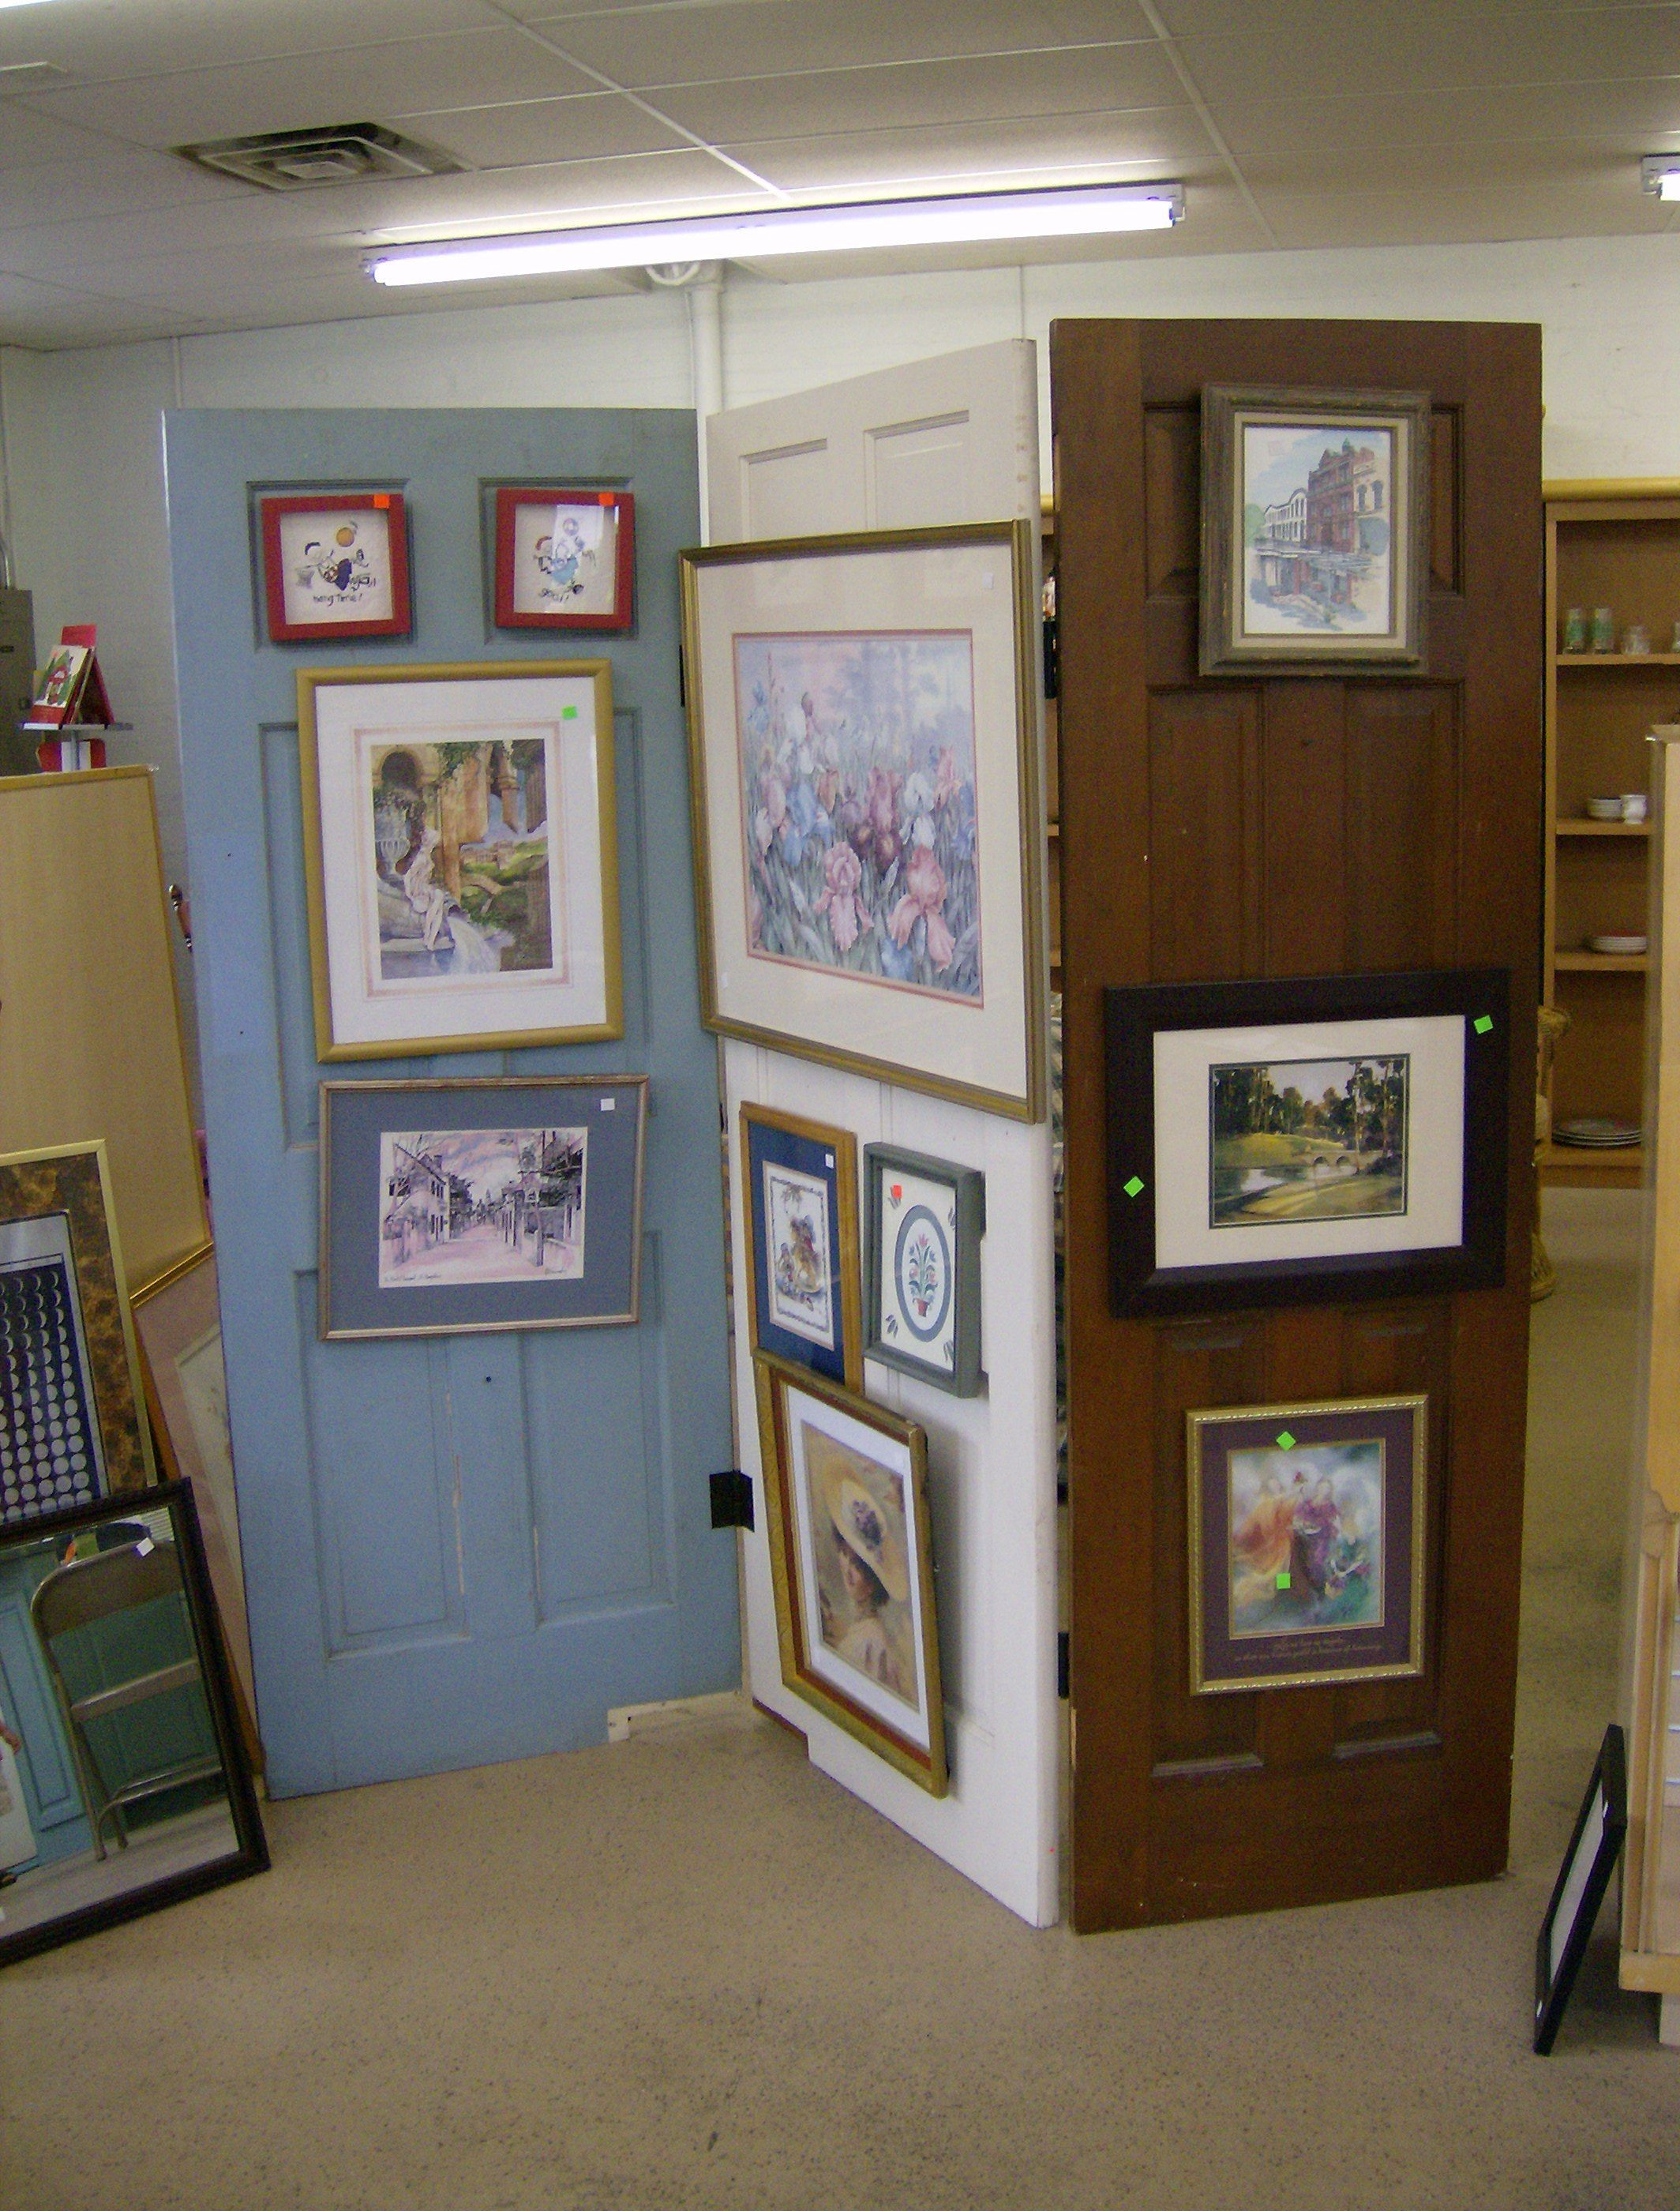 Diy Room Screen Diy Room Divider Turn Old Doors Into Something New Could Even